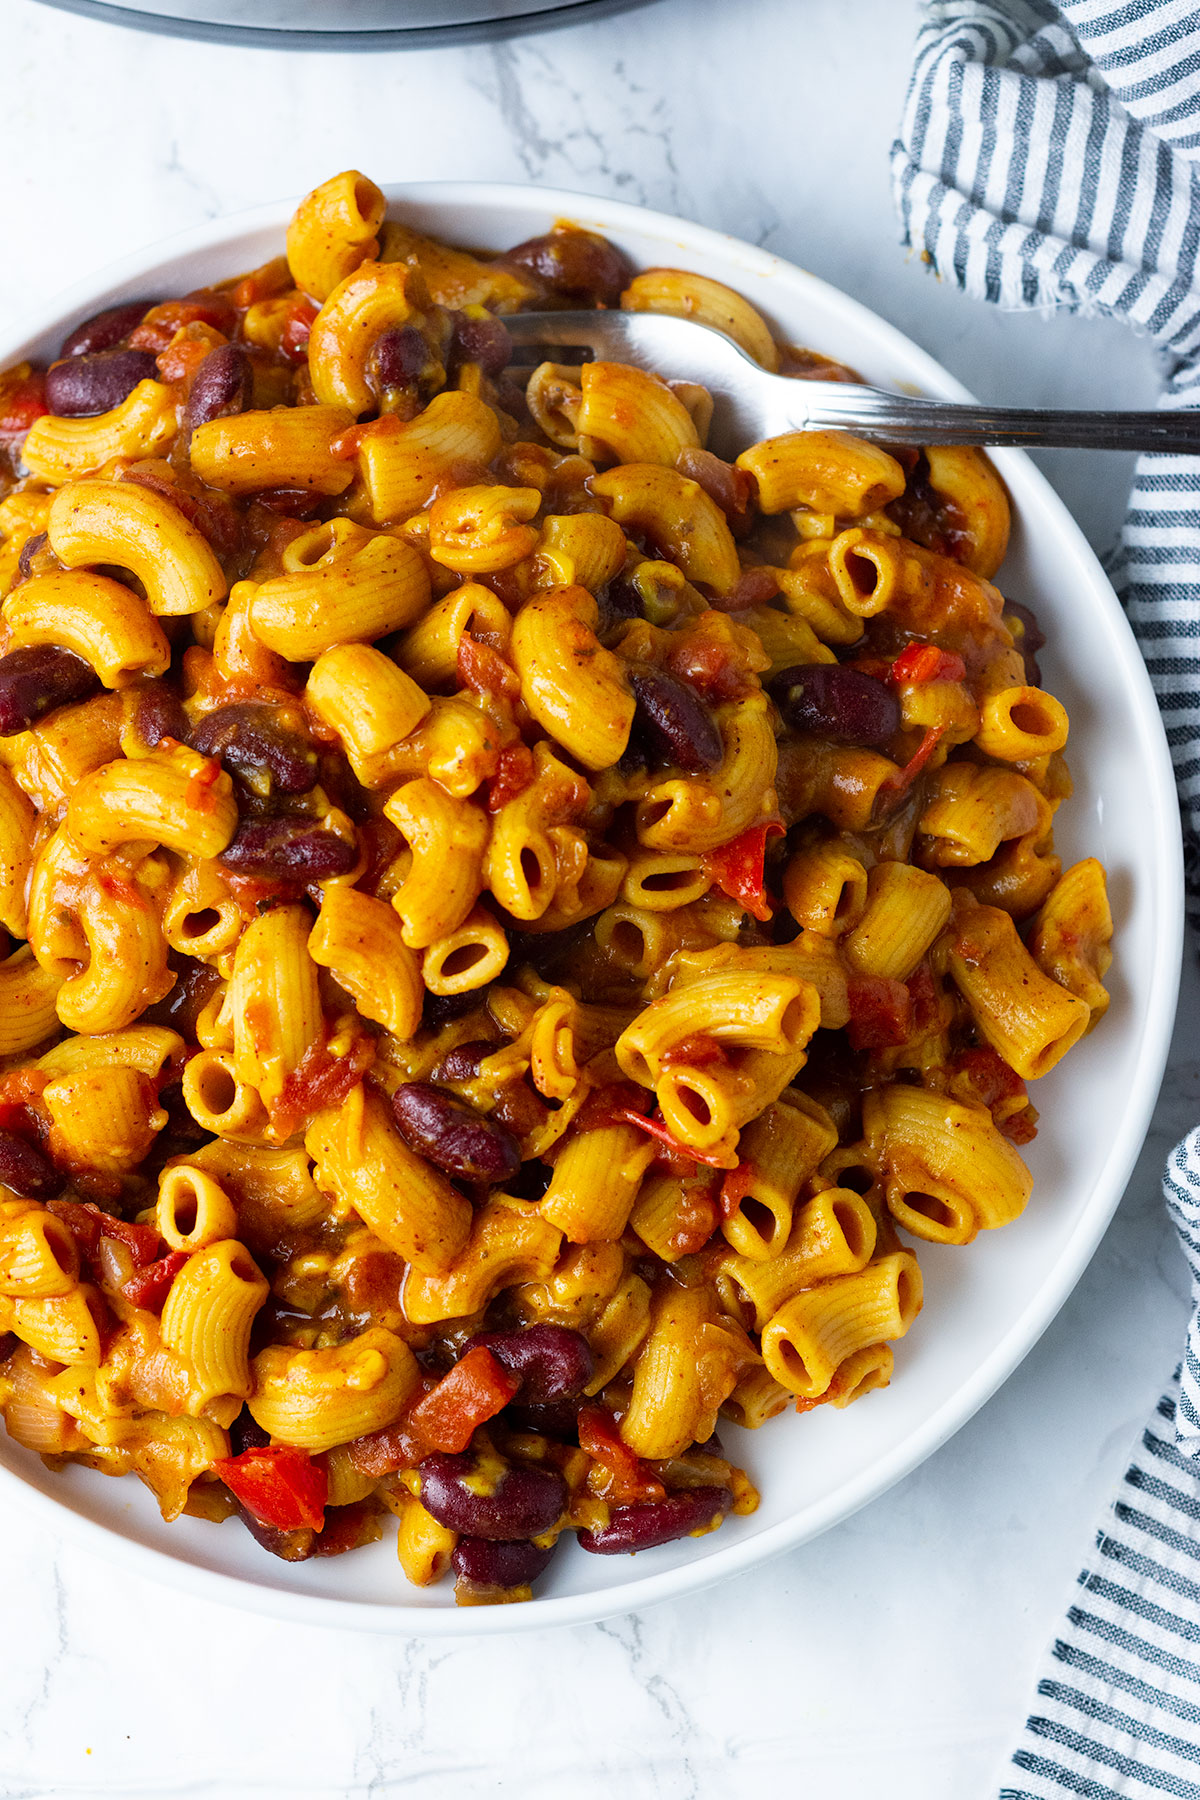 Instant Pot Vegan Chili Mac And Cheese overlay in white plate